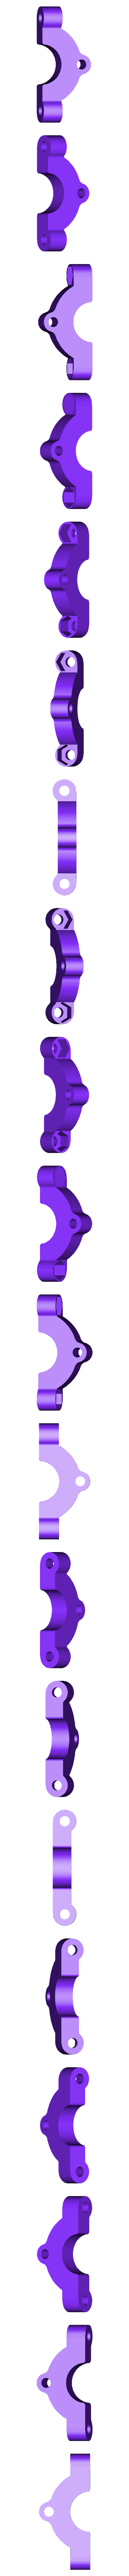 Clamp2.stl Download free STL file e3d V6 Kossel Rostock Delta effector • Template to 3D print, robC